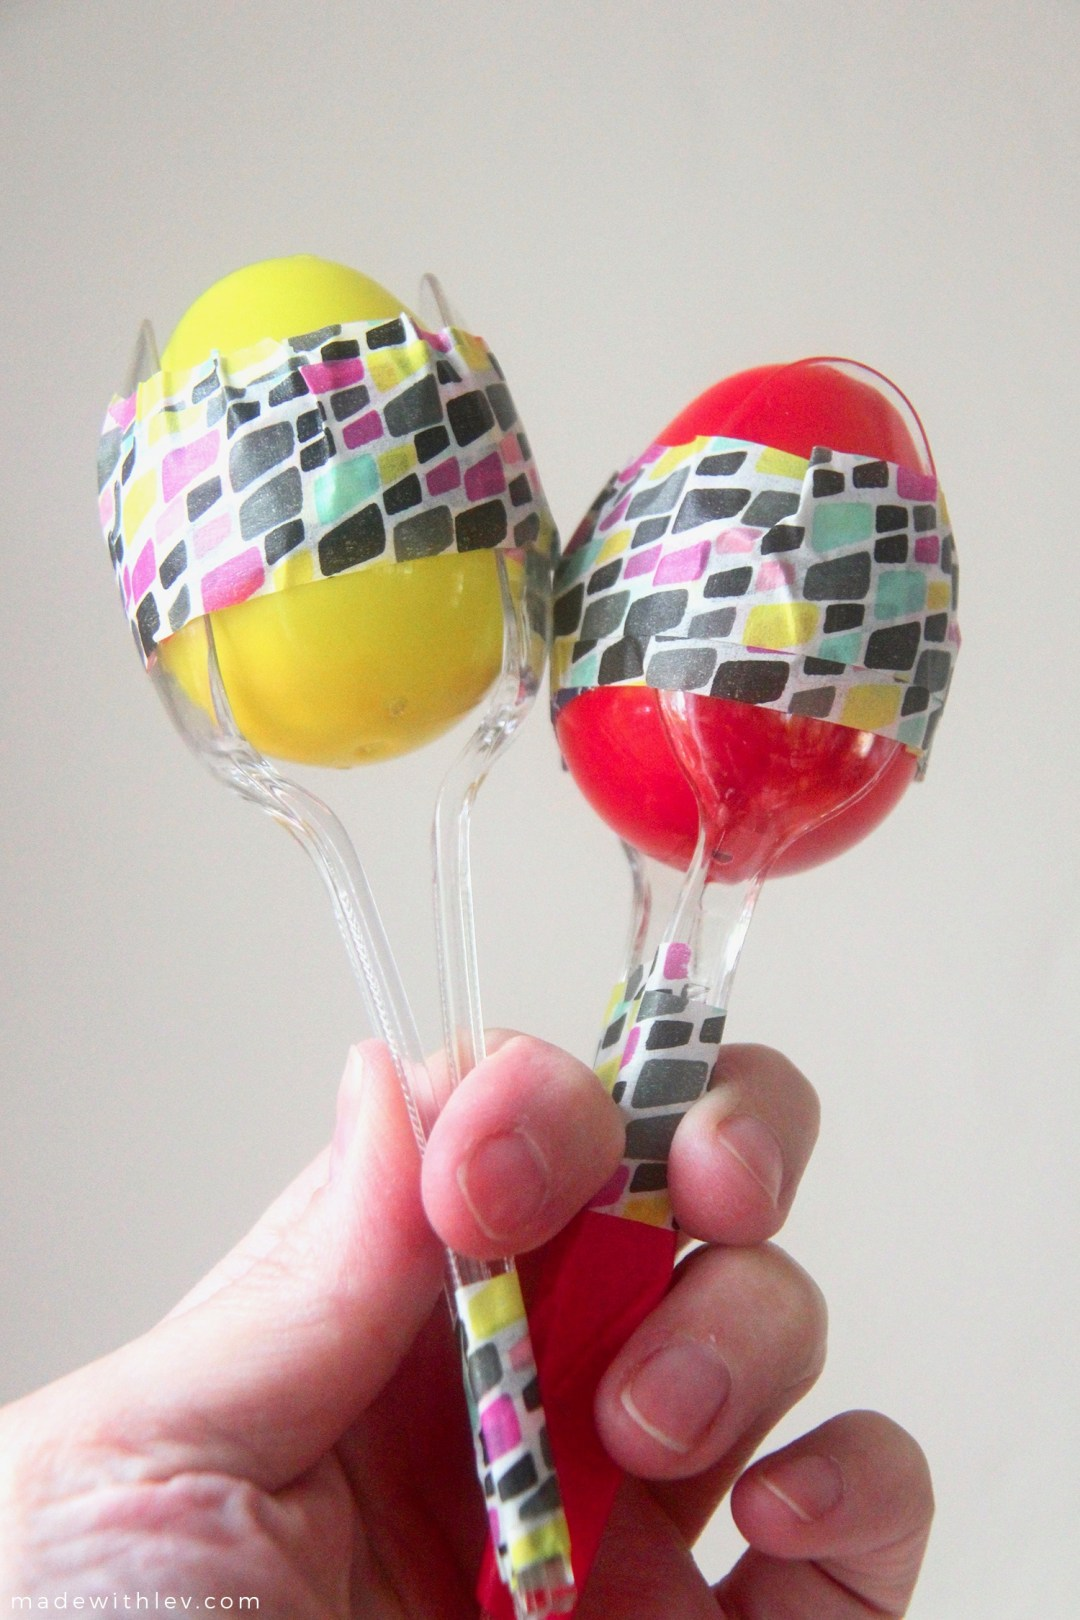 Plastic Egg Maracas for Cinco de Mayo | This project involves minimal supplies and (hopefully) ones that you have in your house already. It's also a really great project to have in your back pocket post-Easter since plastic eggs are seriously on sale.#musicalinstruments #toddlercrafts #sensoryplay #noisemakers #maracas #cincodemayo #partyfavor #partycraft #colorfulcraft #plasticeggs #kidscrafts #familycrafts #preschoolcraft